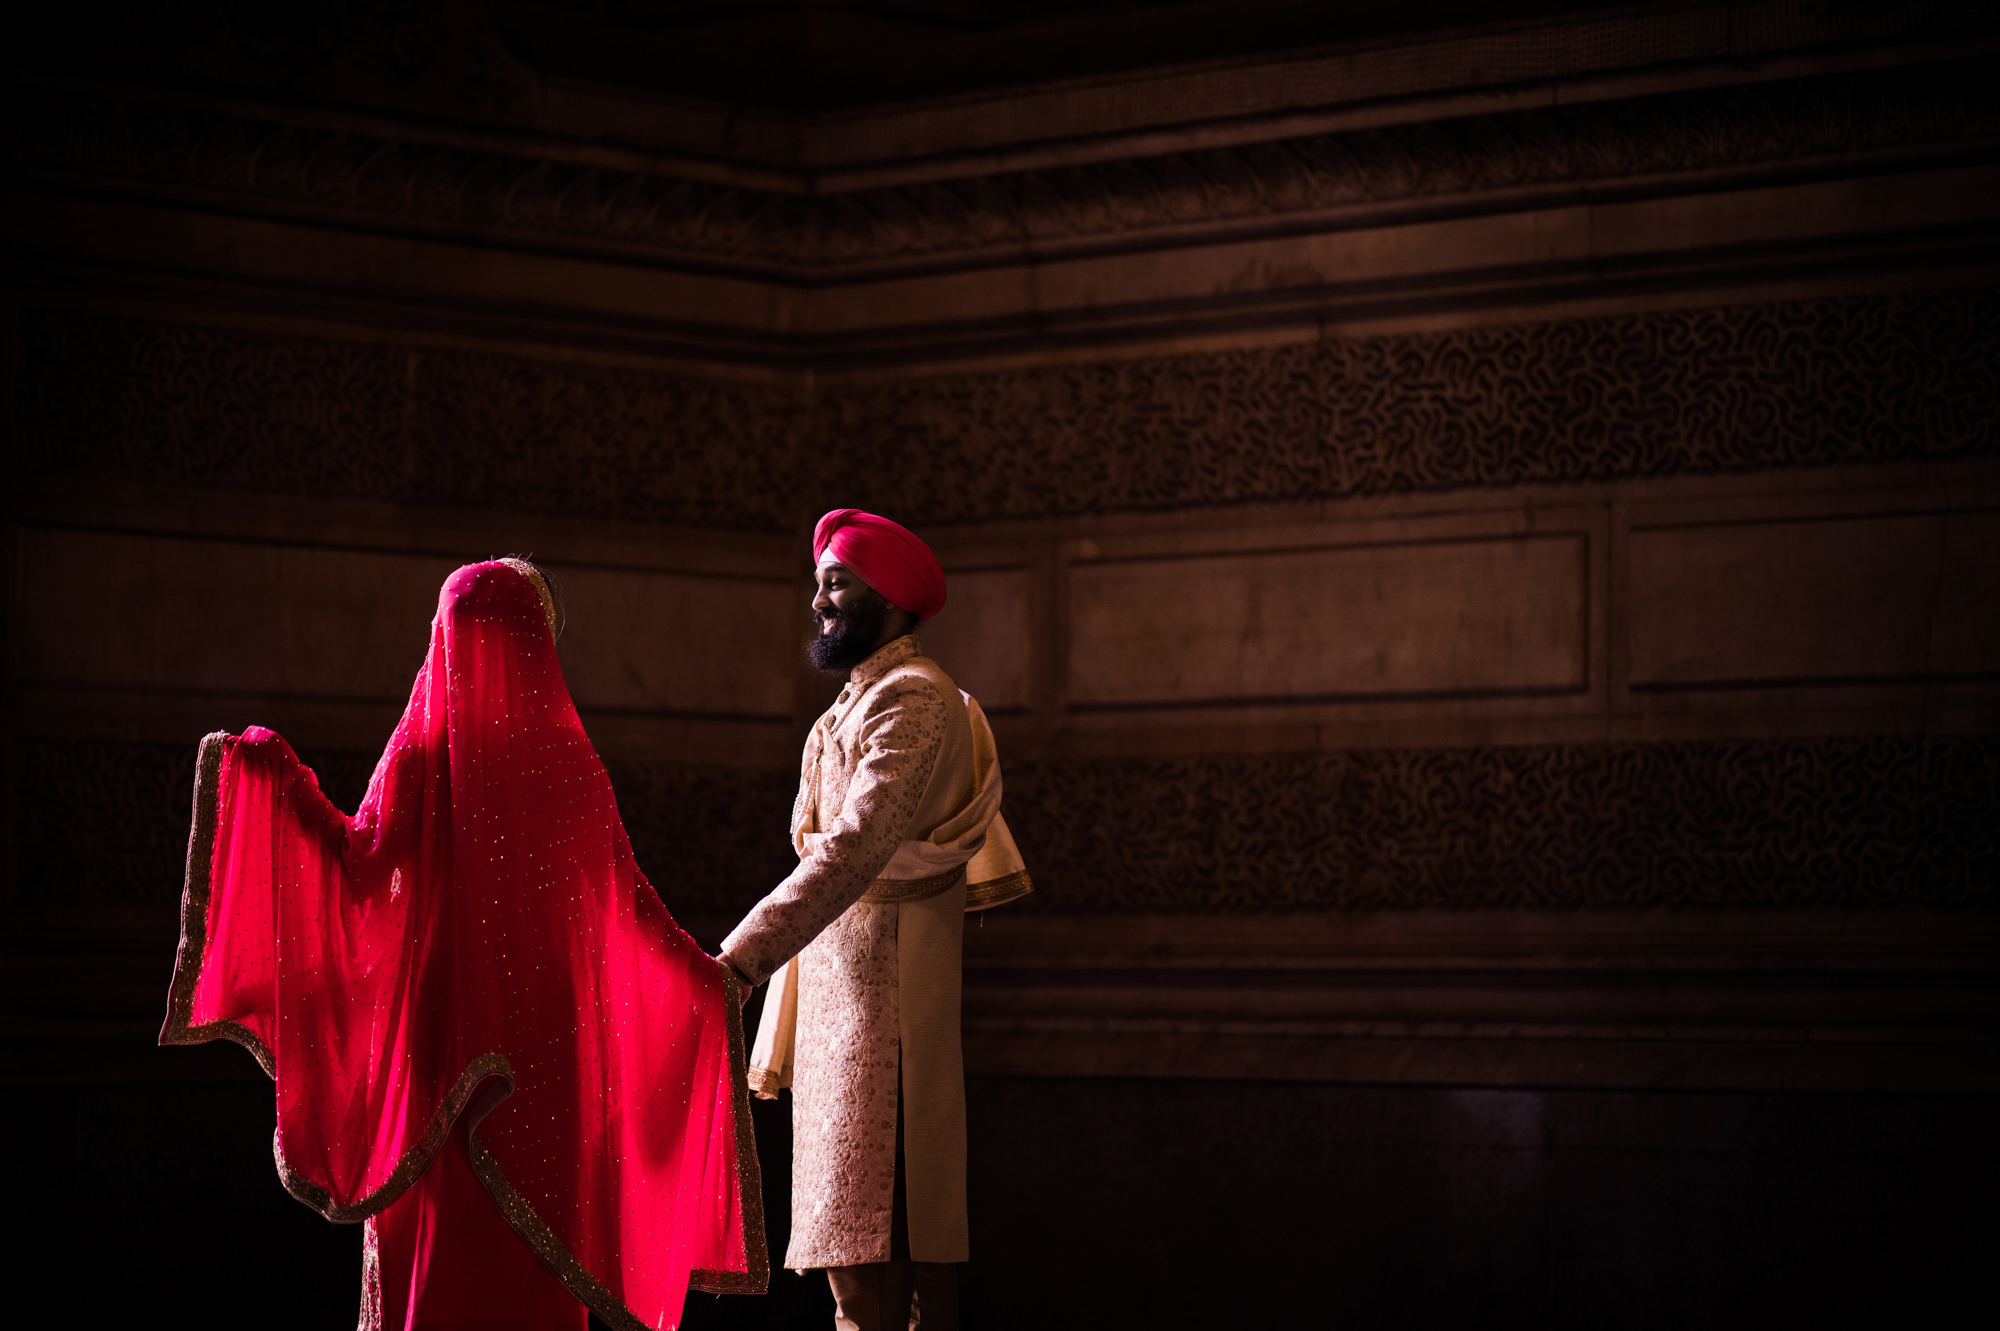 Indian couple in red photo by Cliff Mautner